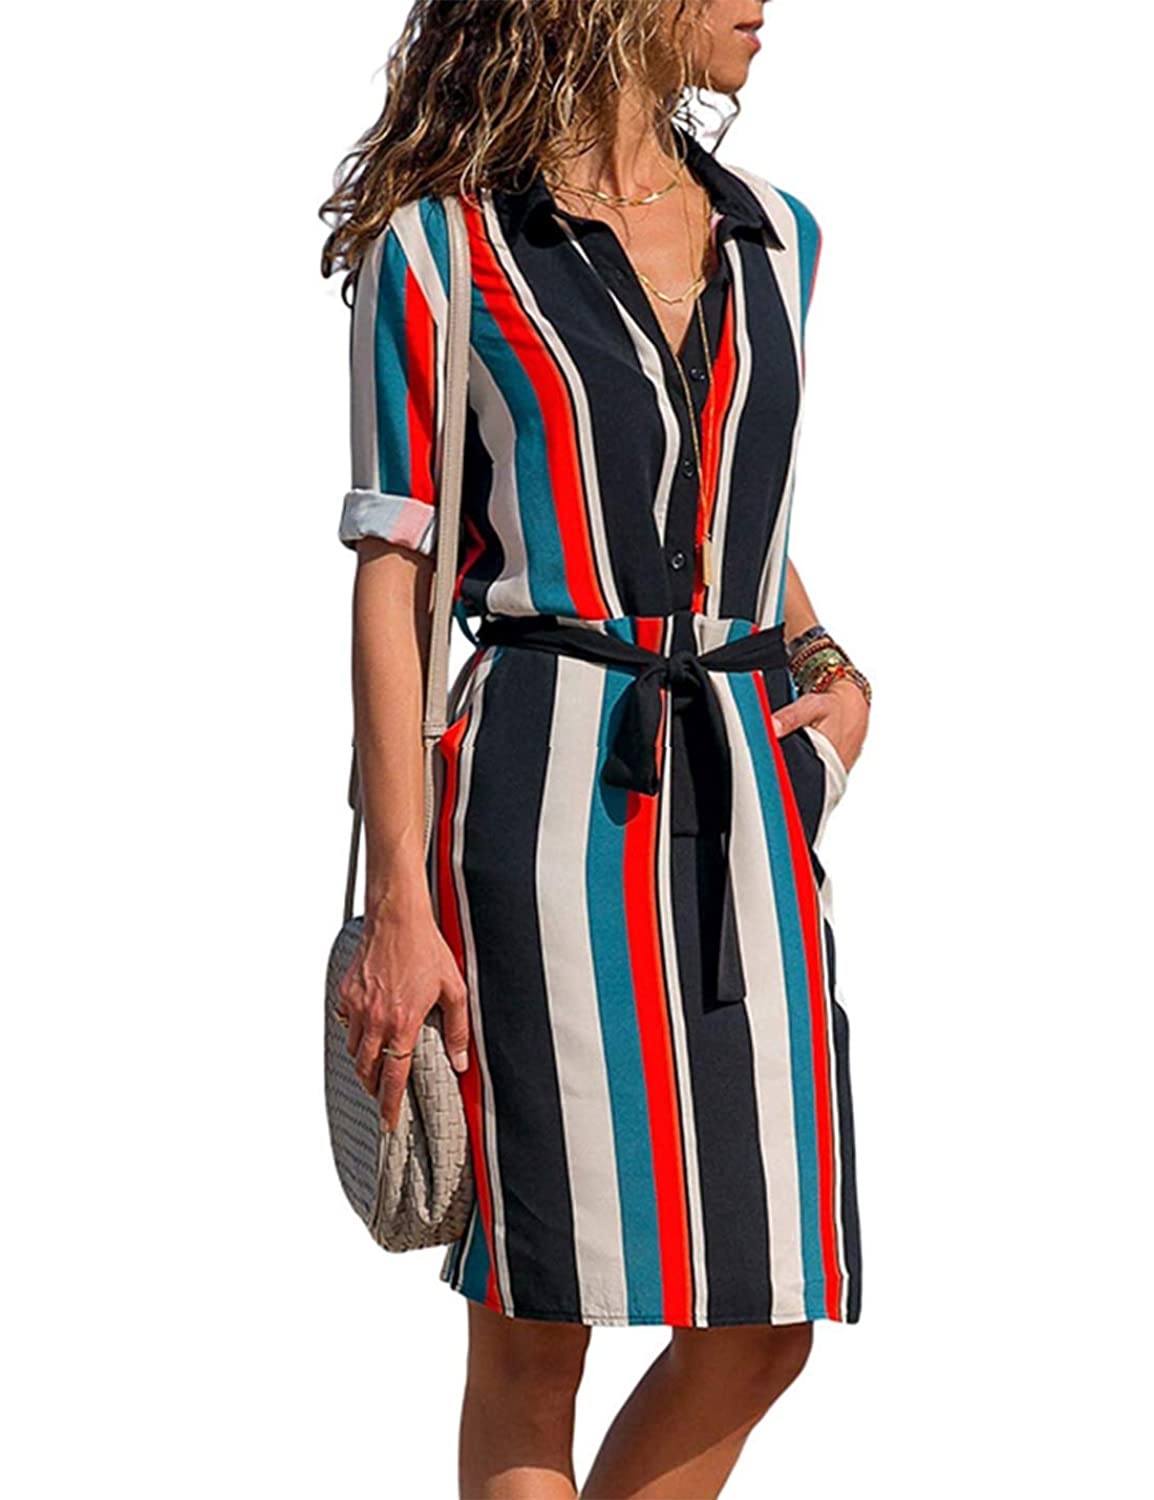 35d5db3a Material:95%Polyester + 5%Spandex,Soft and stretchy fabric, cool and  comfortable to wear. Women's Elegant Color Block Stripe Print Long Sleeve Wear  to Work ...